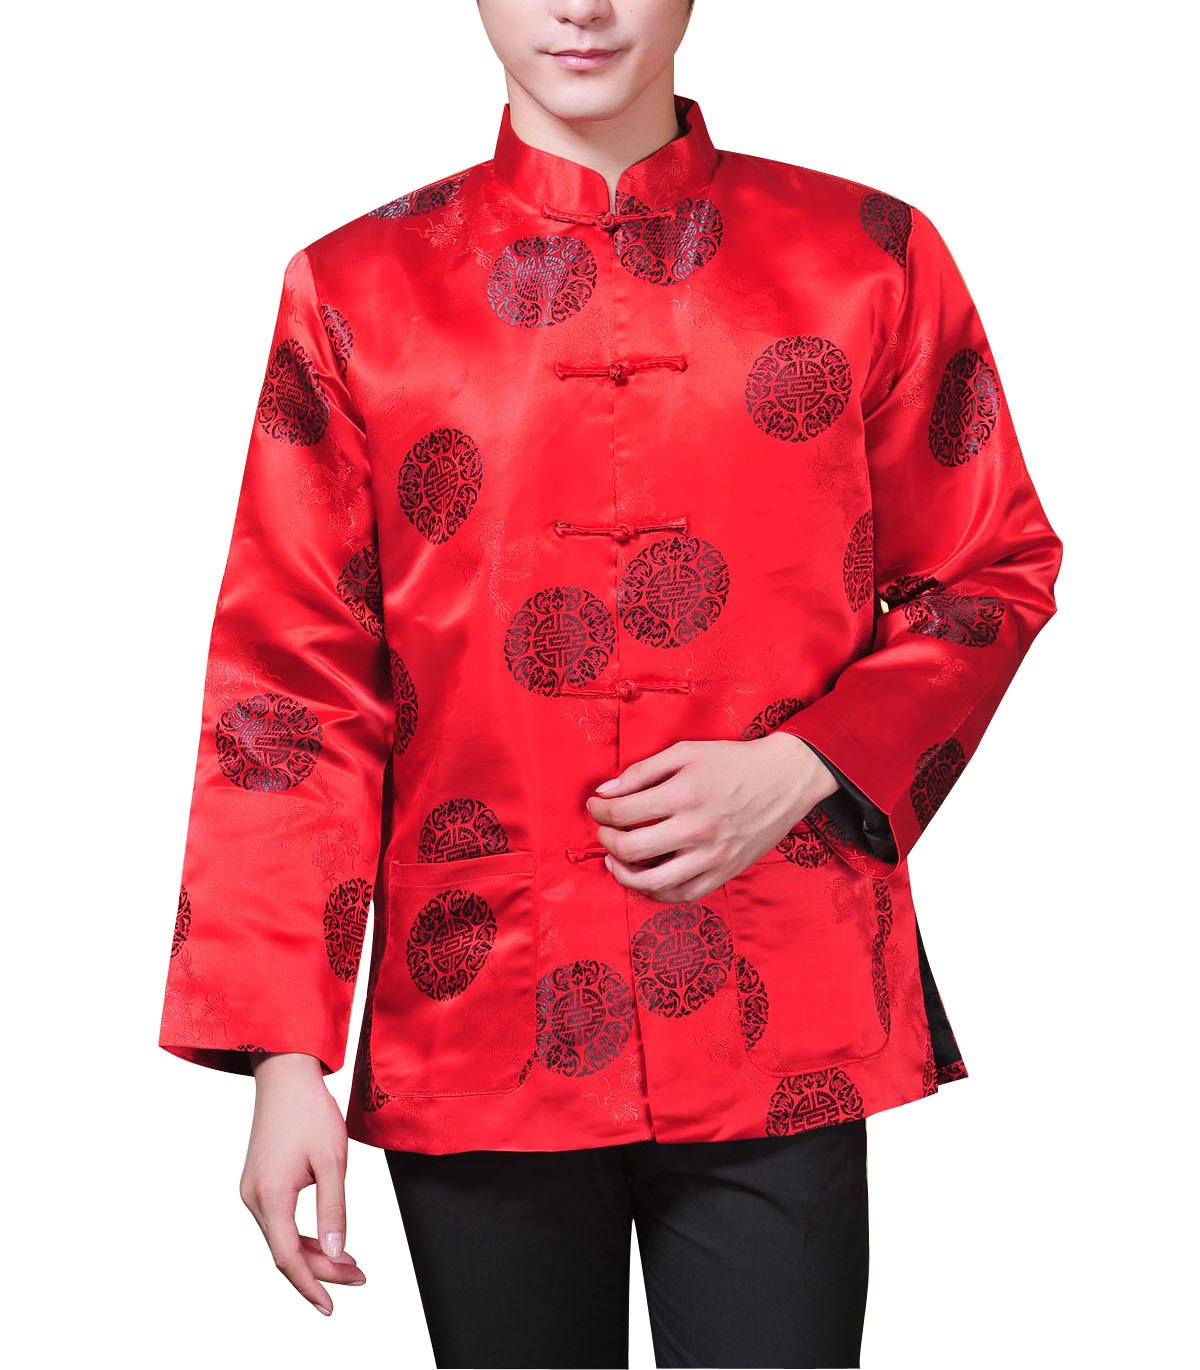 ACVIP Men's Lucky Coin and Dragon Brocade Long Sleeve Chinese Kung Fu Tang Jacket Shirt (US S / Chinese L, Red)